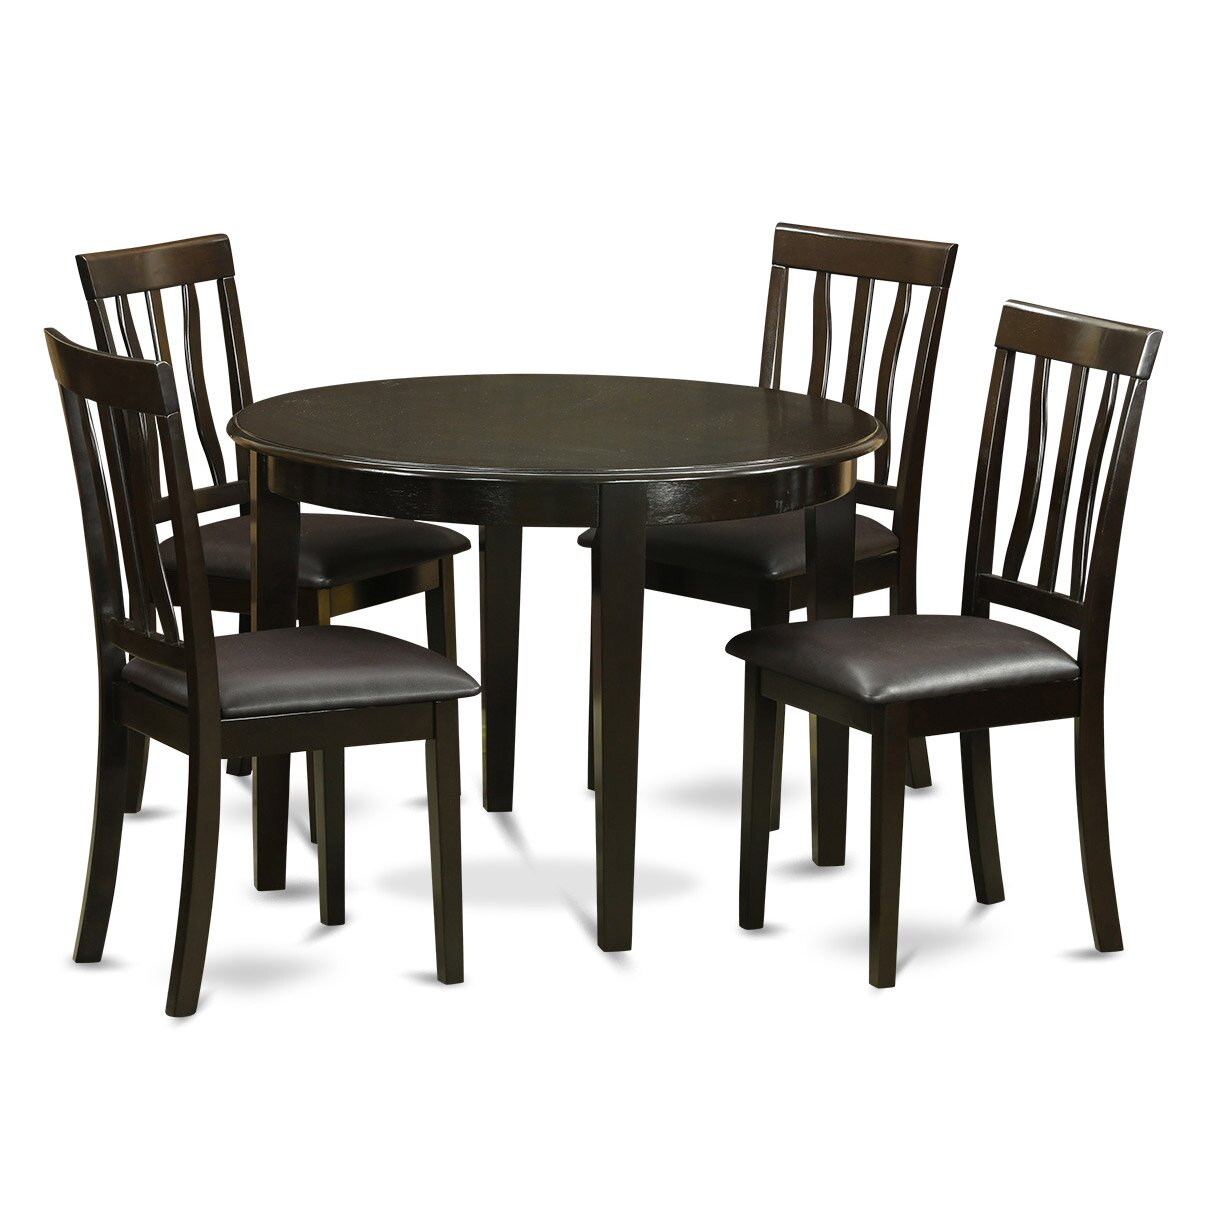 Wooden importers boston 5 piece dining set wayfair for Kitchenette sets furniture